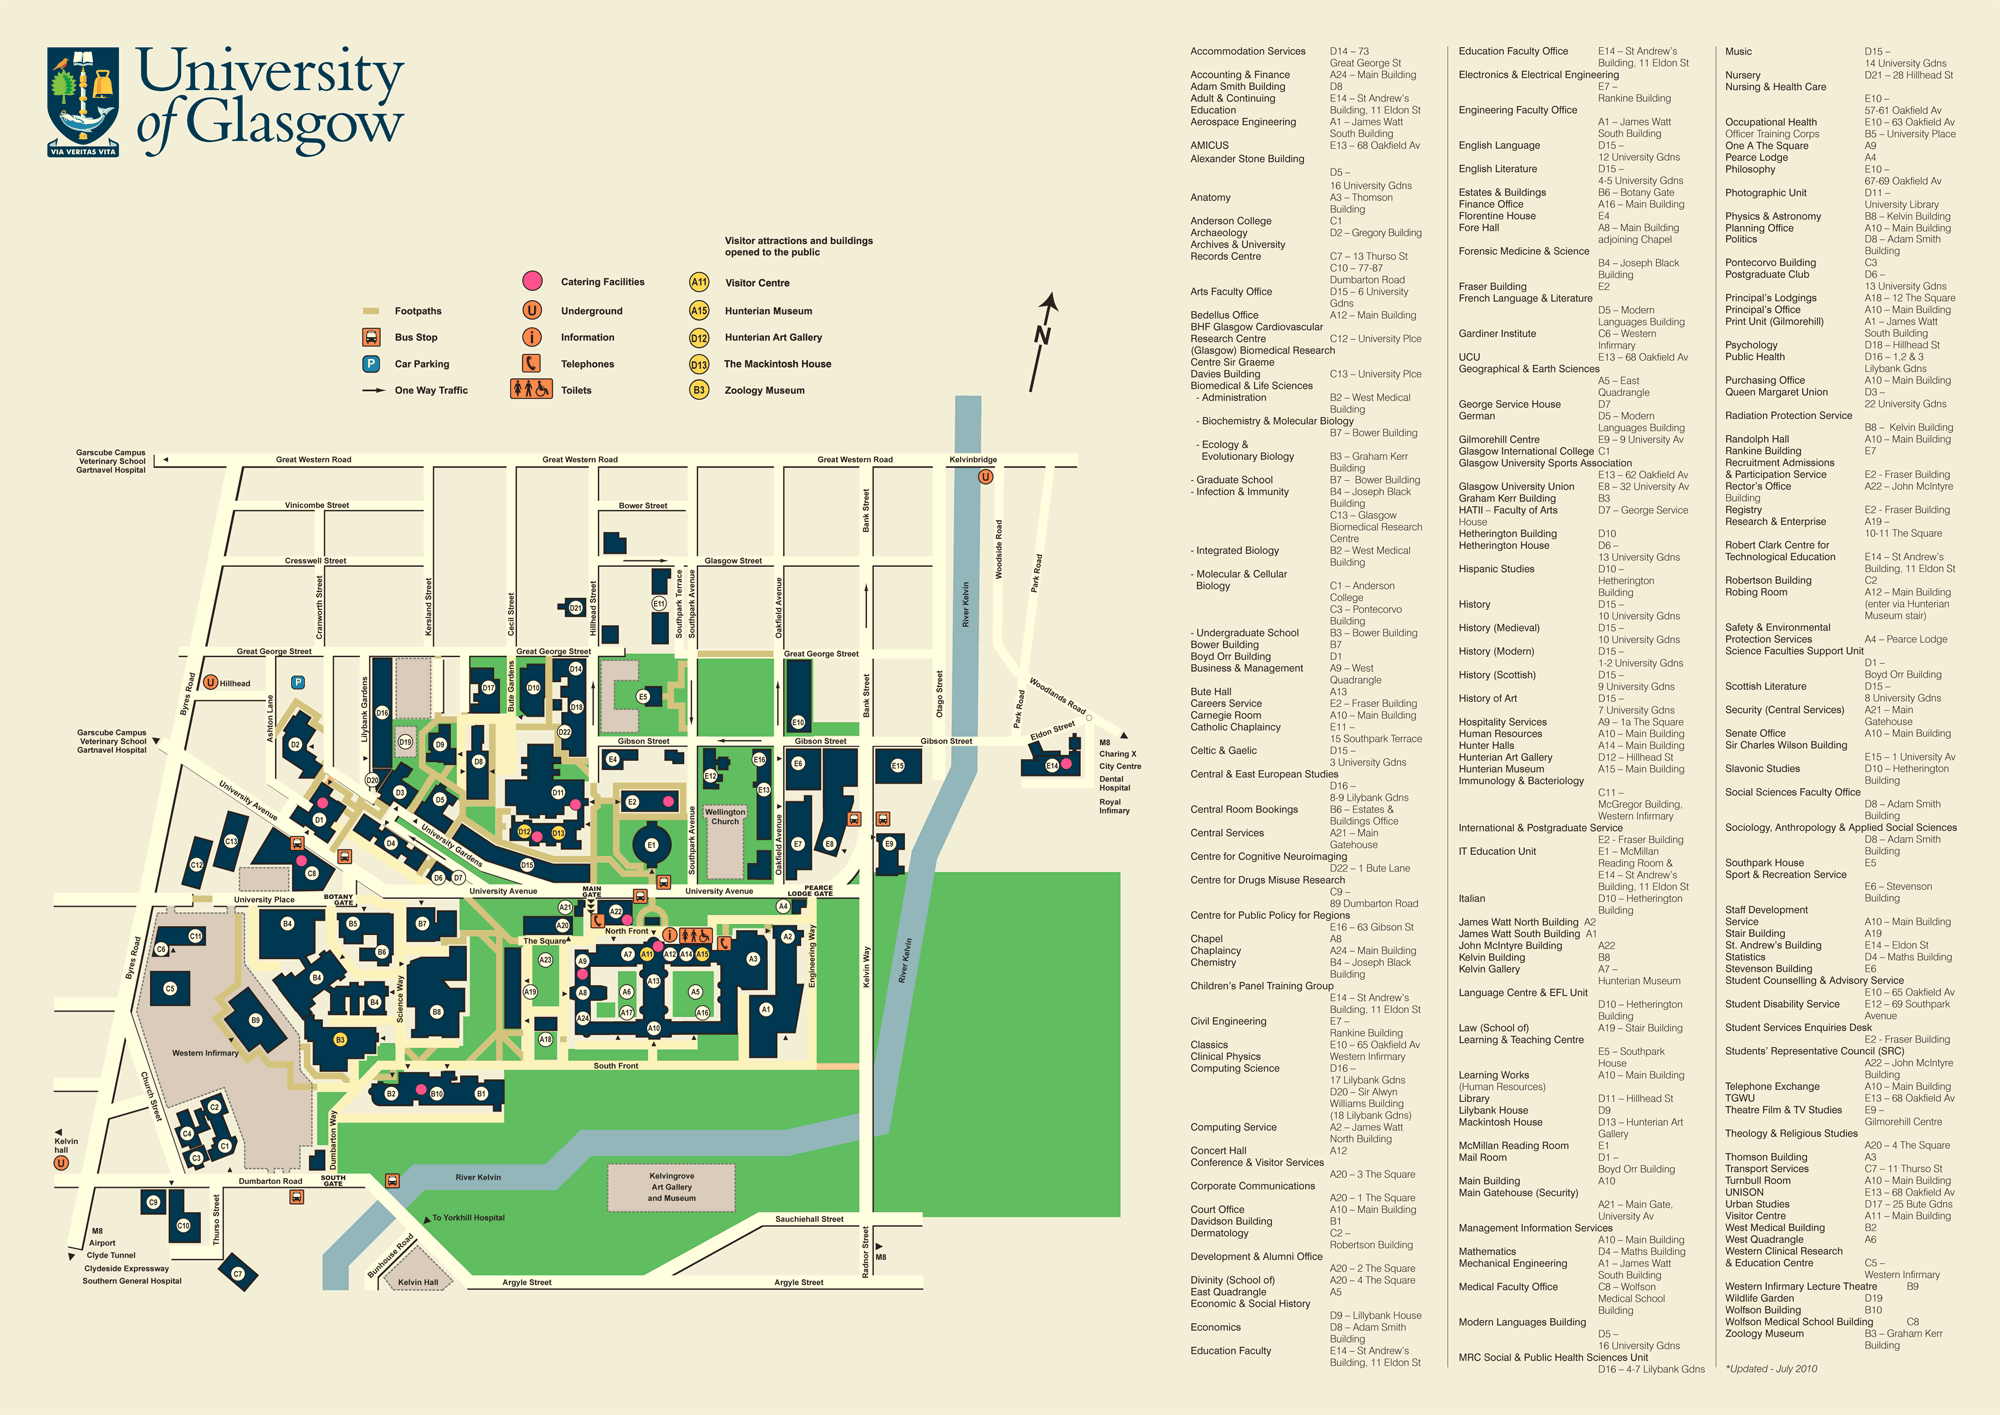 Glasgow Uni Map University of Glasgow Campus • Mapsof.net